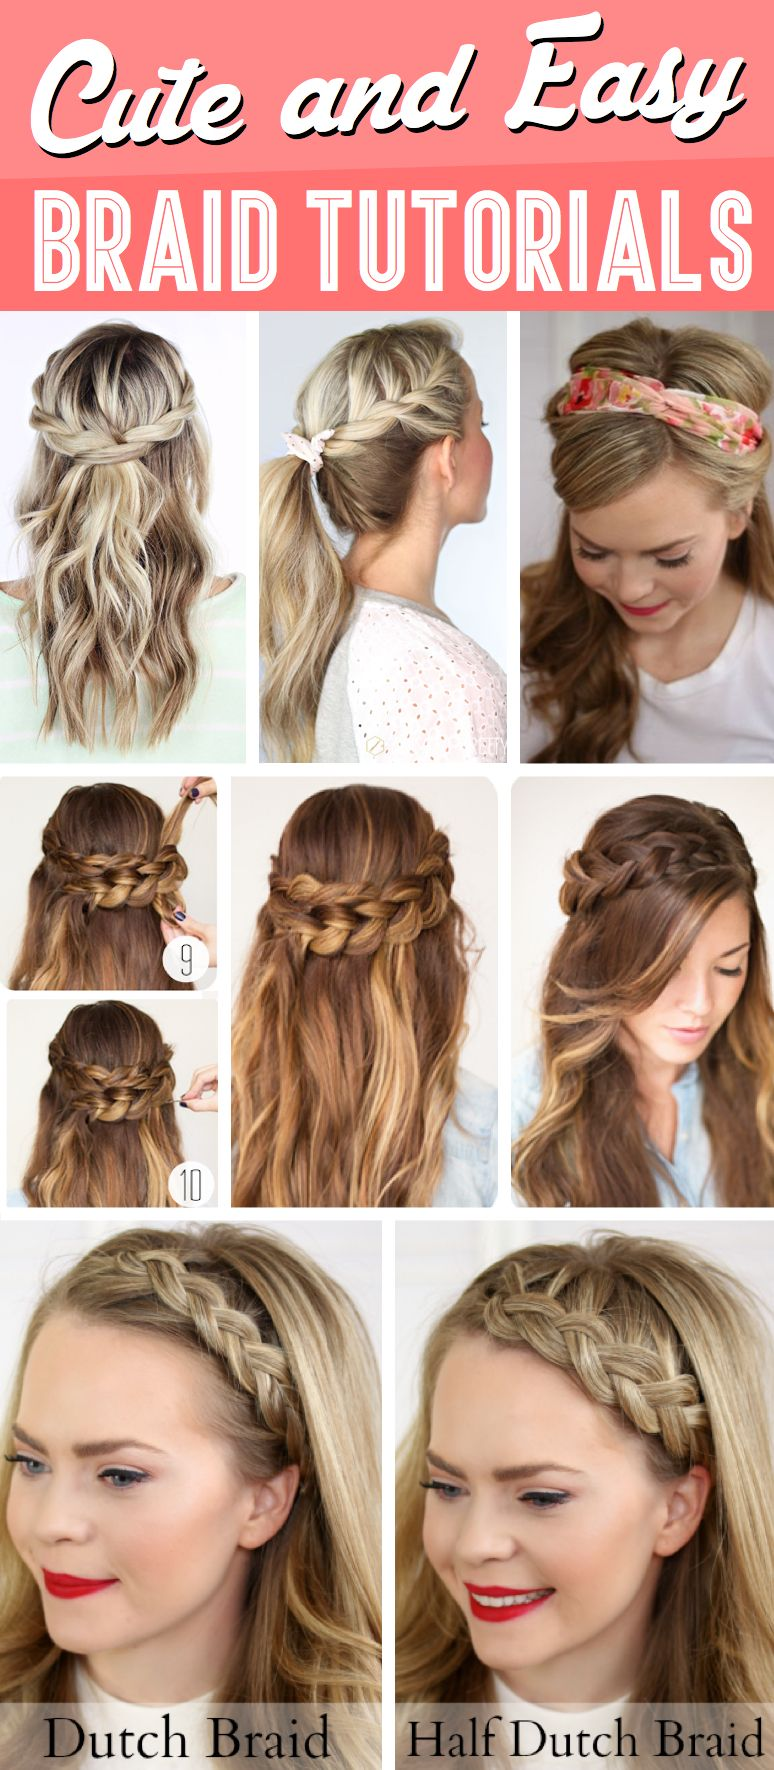 30 Cute And Easy Braid Tutorials That Are Perfect For Any Occasion Cute Diy Projects Easy Braids Braids Tutorial Easy Braided Hairstyles Easy